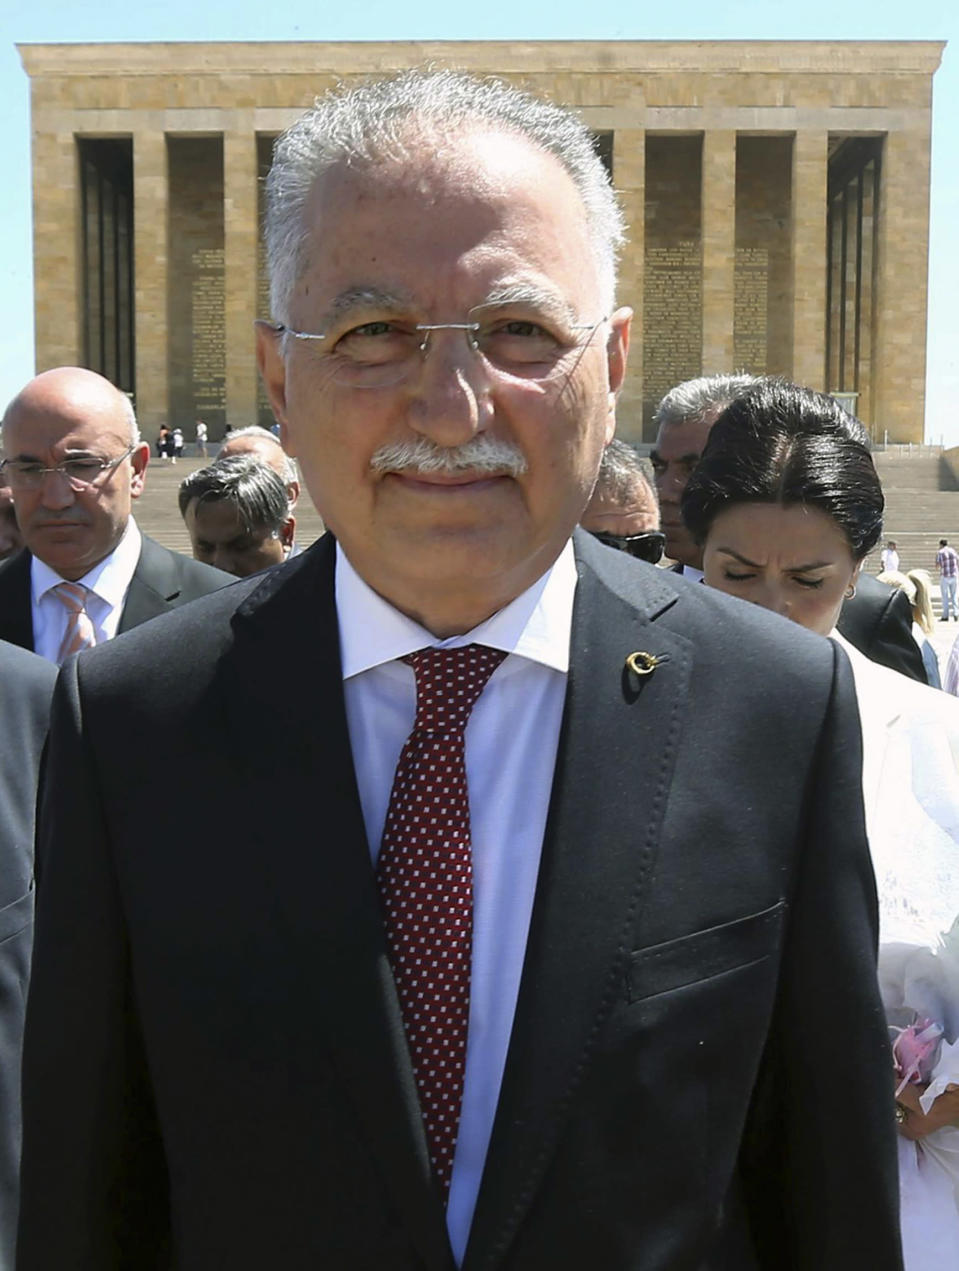 Turkish presidential candidate Ekmeleddin Ihsanoglu visits the Anitkabir -- the mausoleum of Mustafa Kemal Ataturk -- in Ankara, on June 30, 2014 (AFP Photo/Adem Altan)